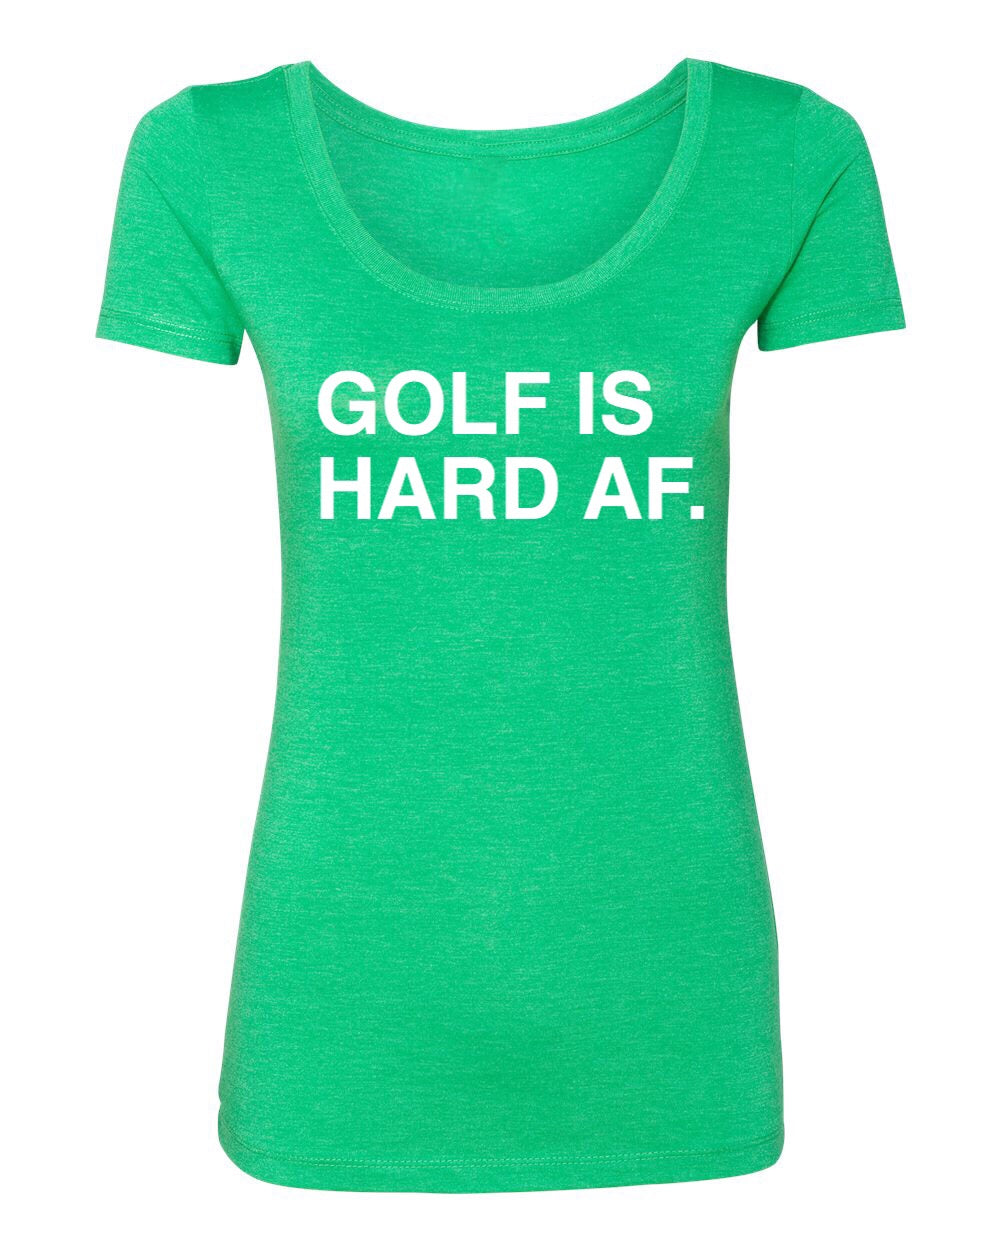 GOLF IS HARD AF. Women's t-shirt